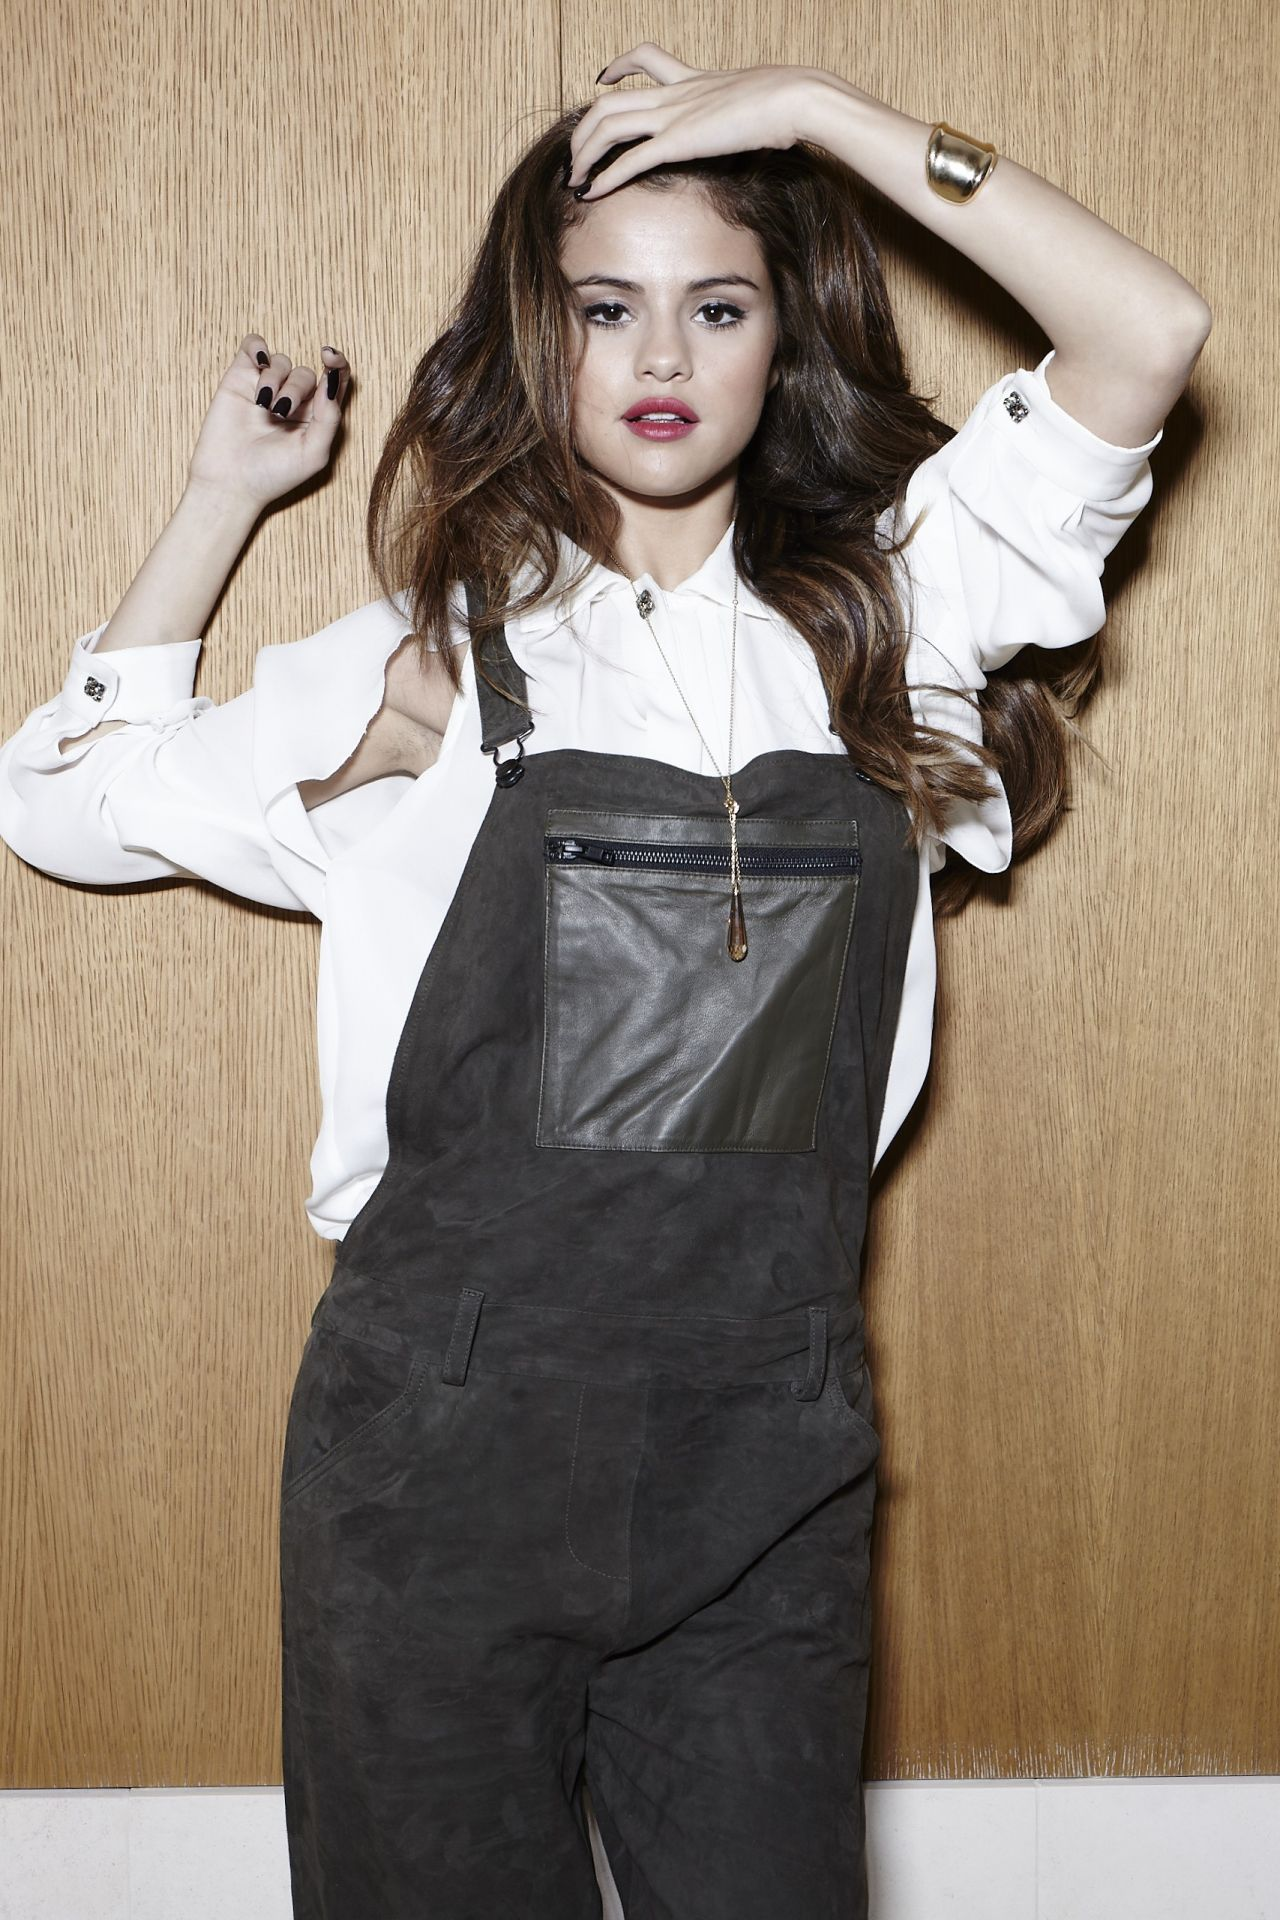 selena gomez photoshoot april 2014